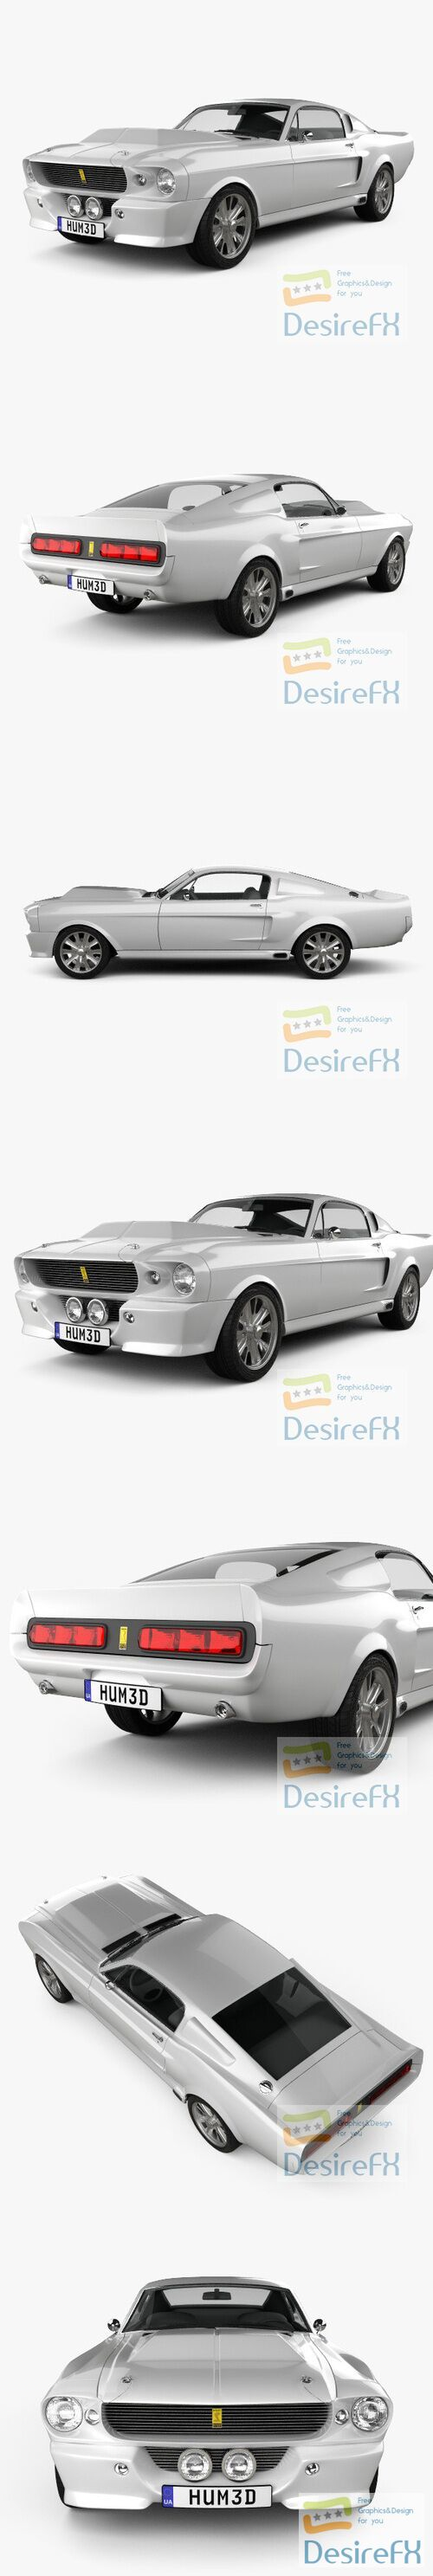 Ford Mustang Shelby Gt500 Eleanor 1967 3D Model